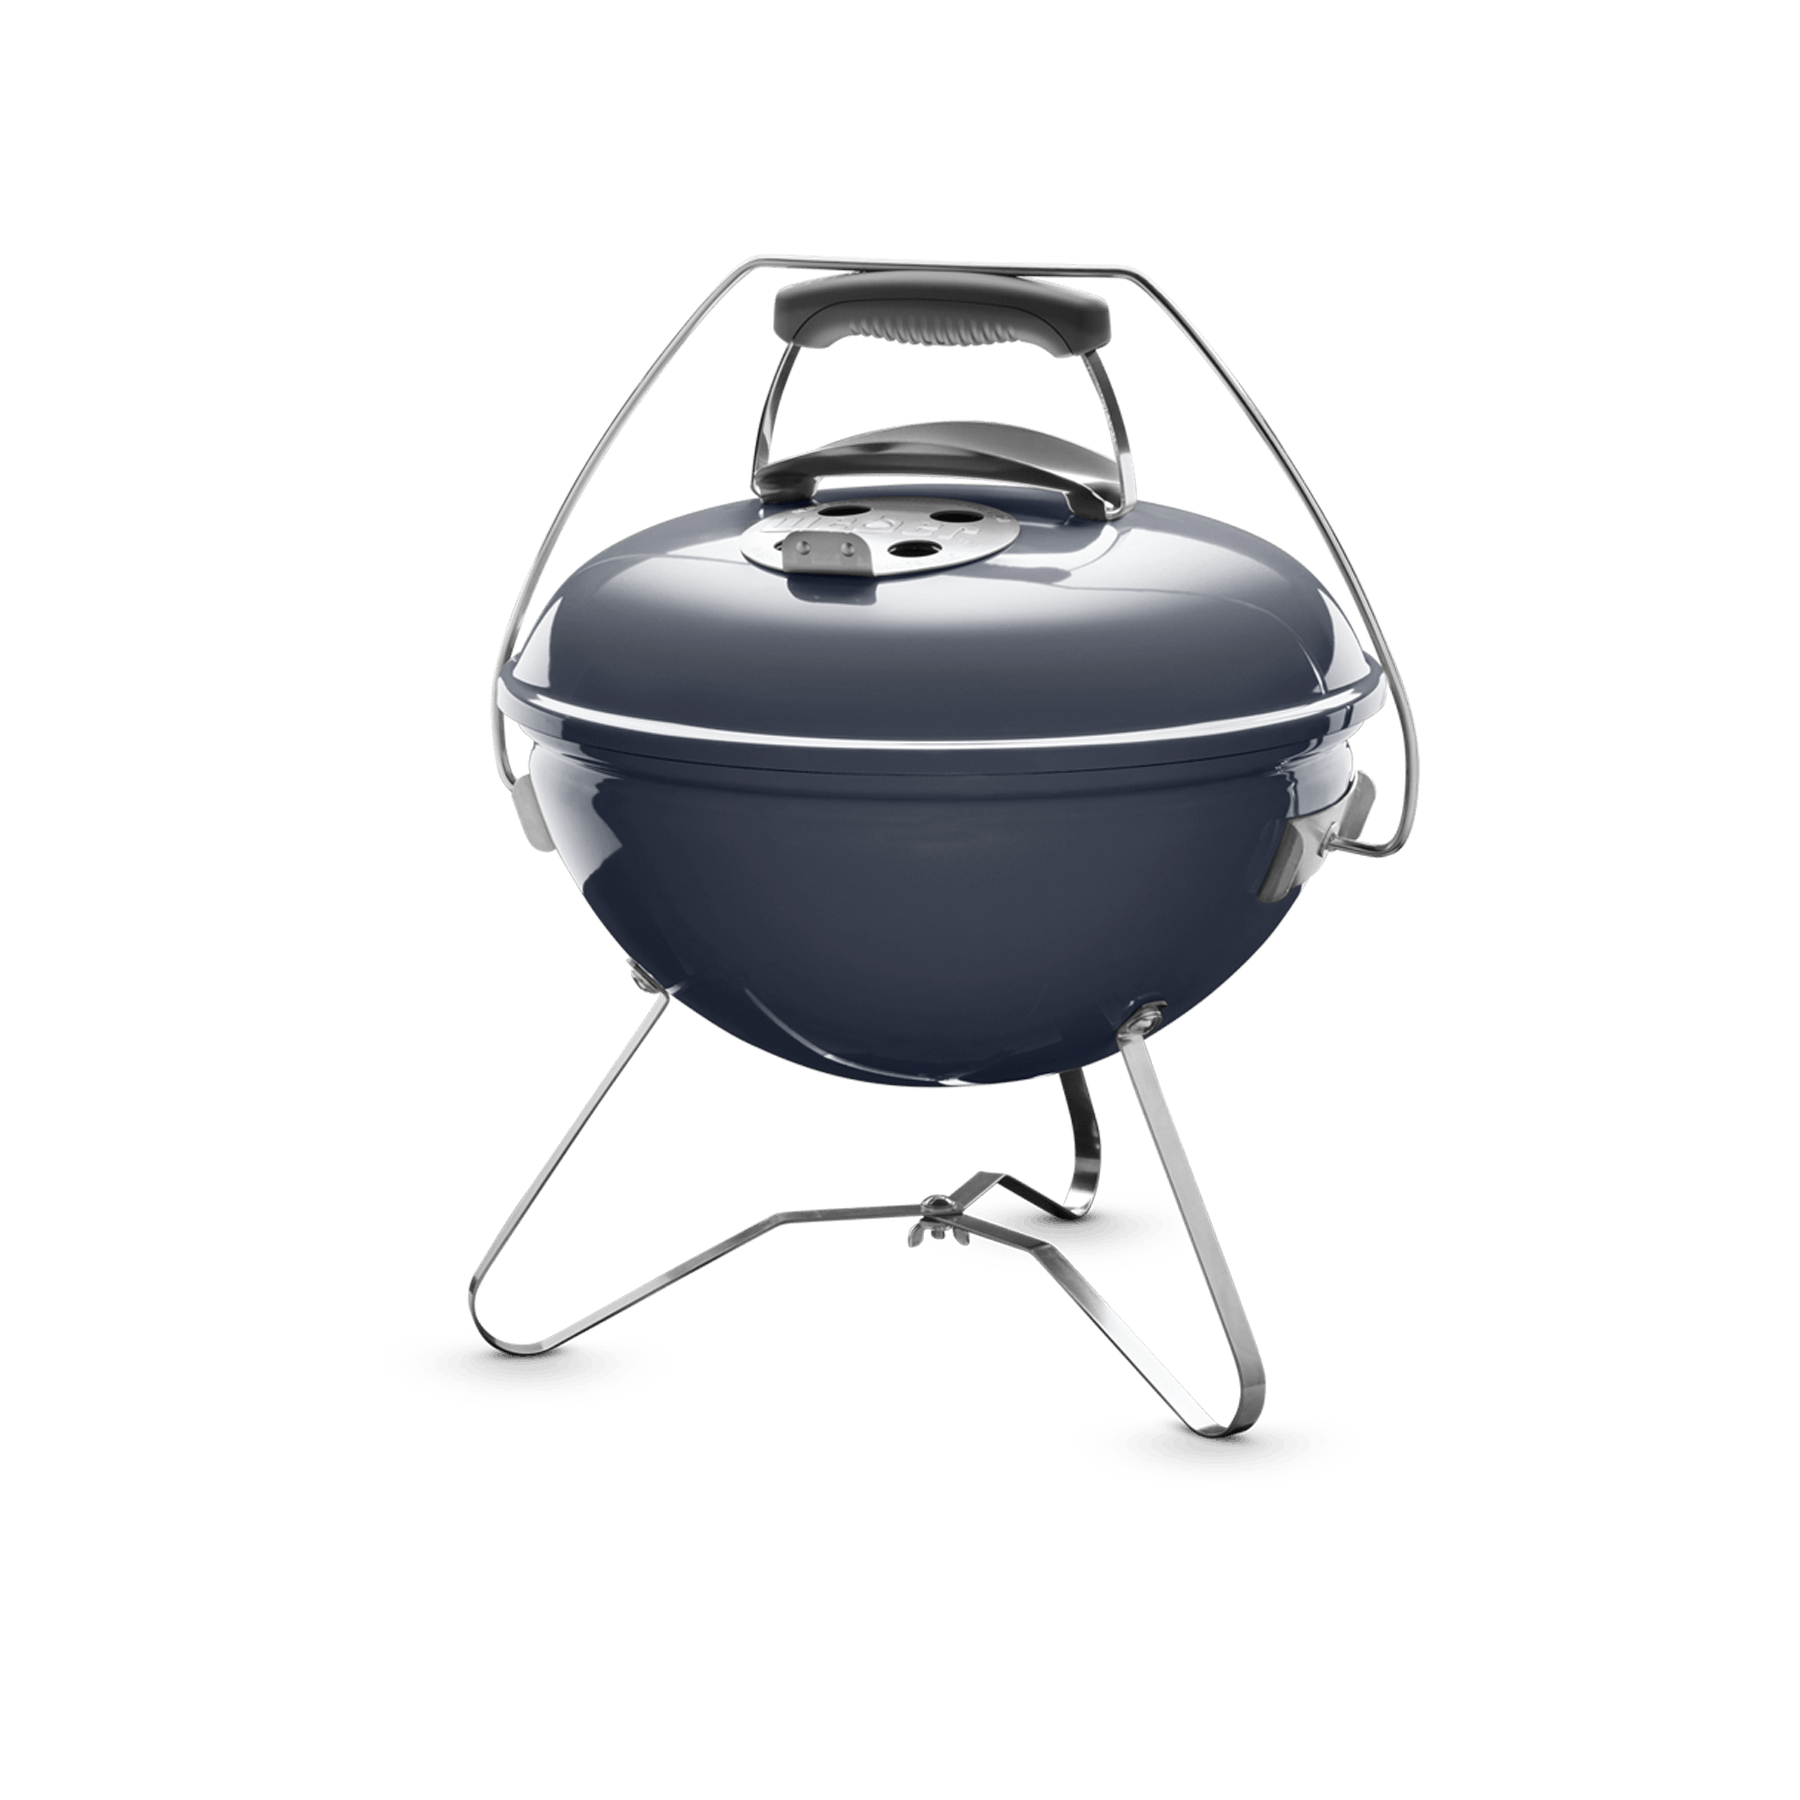 Smokey Joe® Premium Charcoal Grill 37 cm